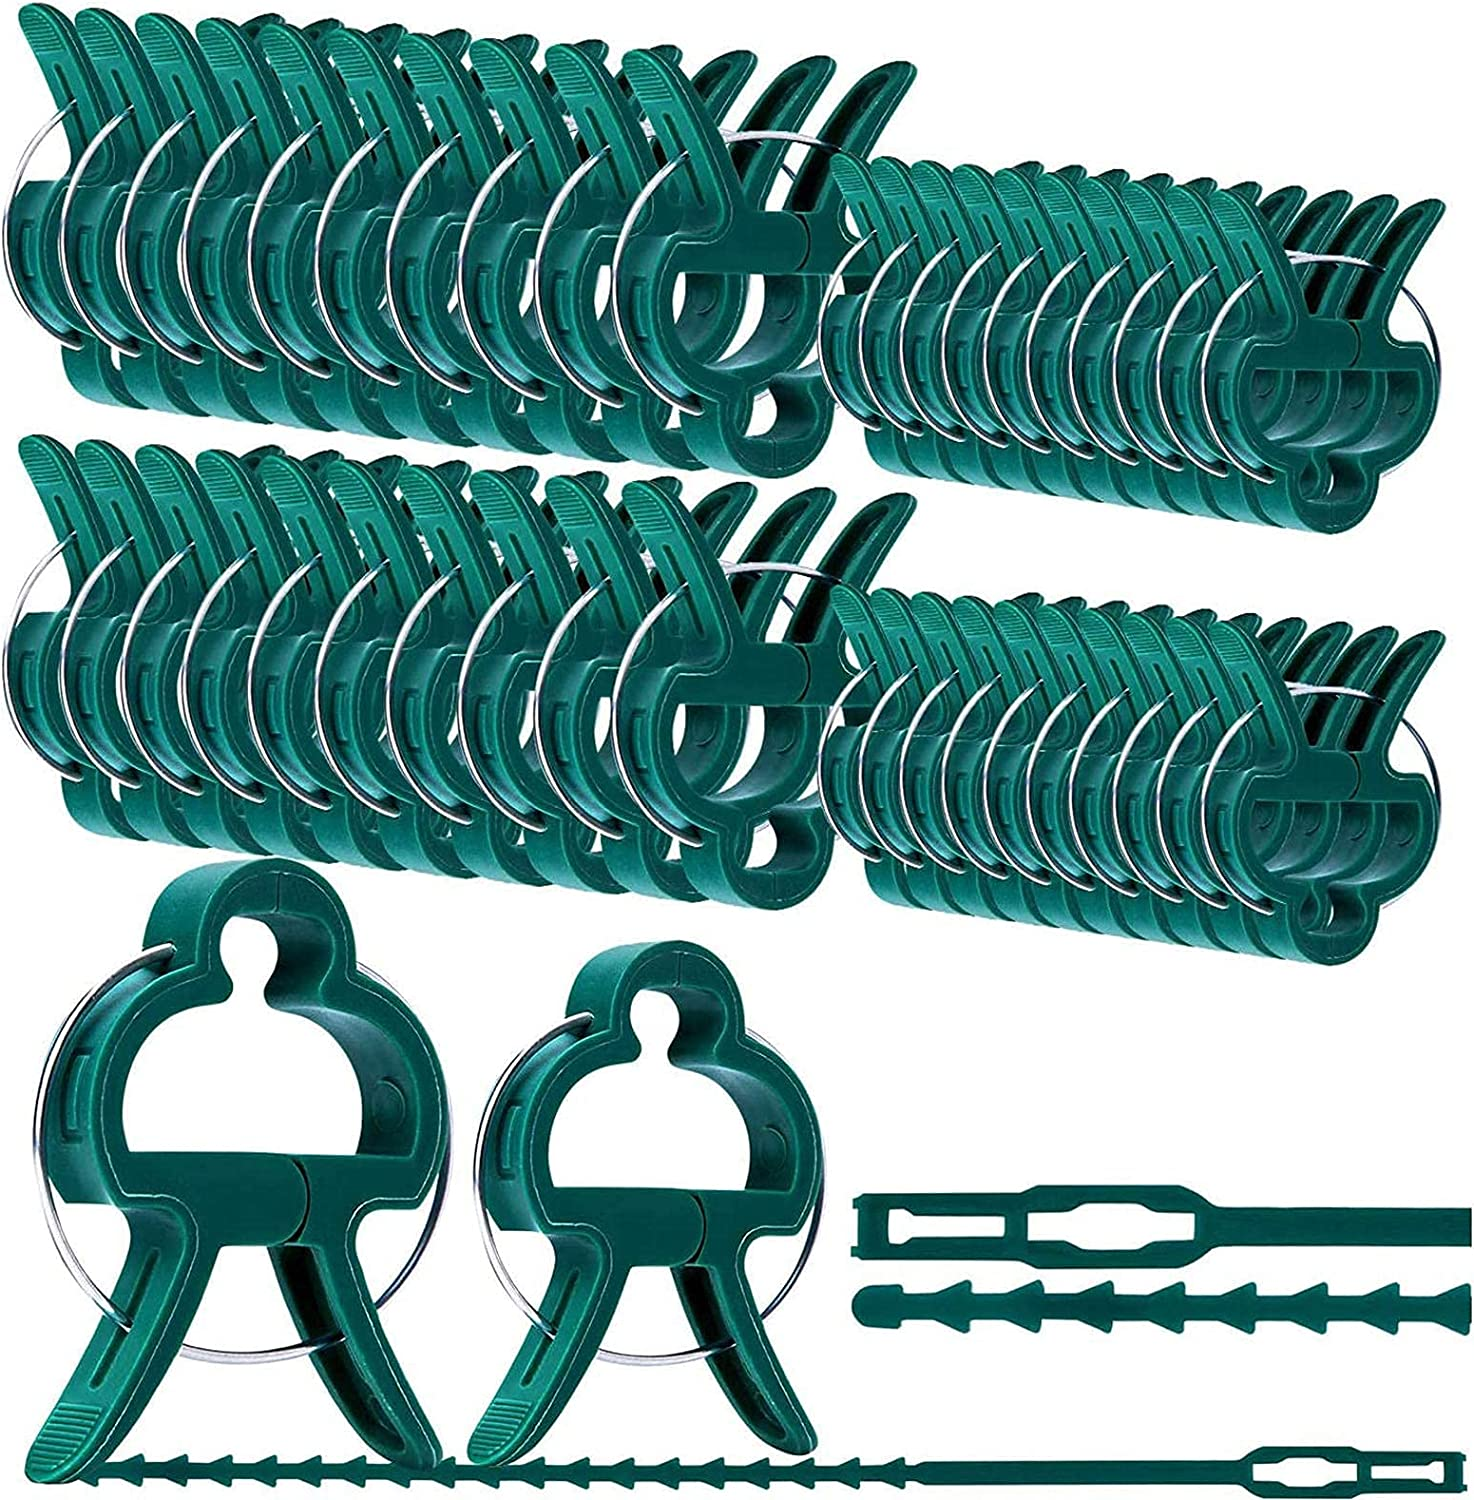 60 Nashville-Davidson Mall PCS Reusable New popularity Garden Clips for Pl Climbing Plants Easy Use to